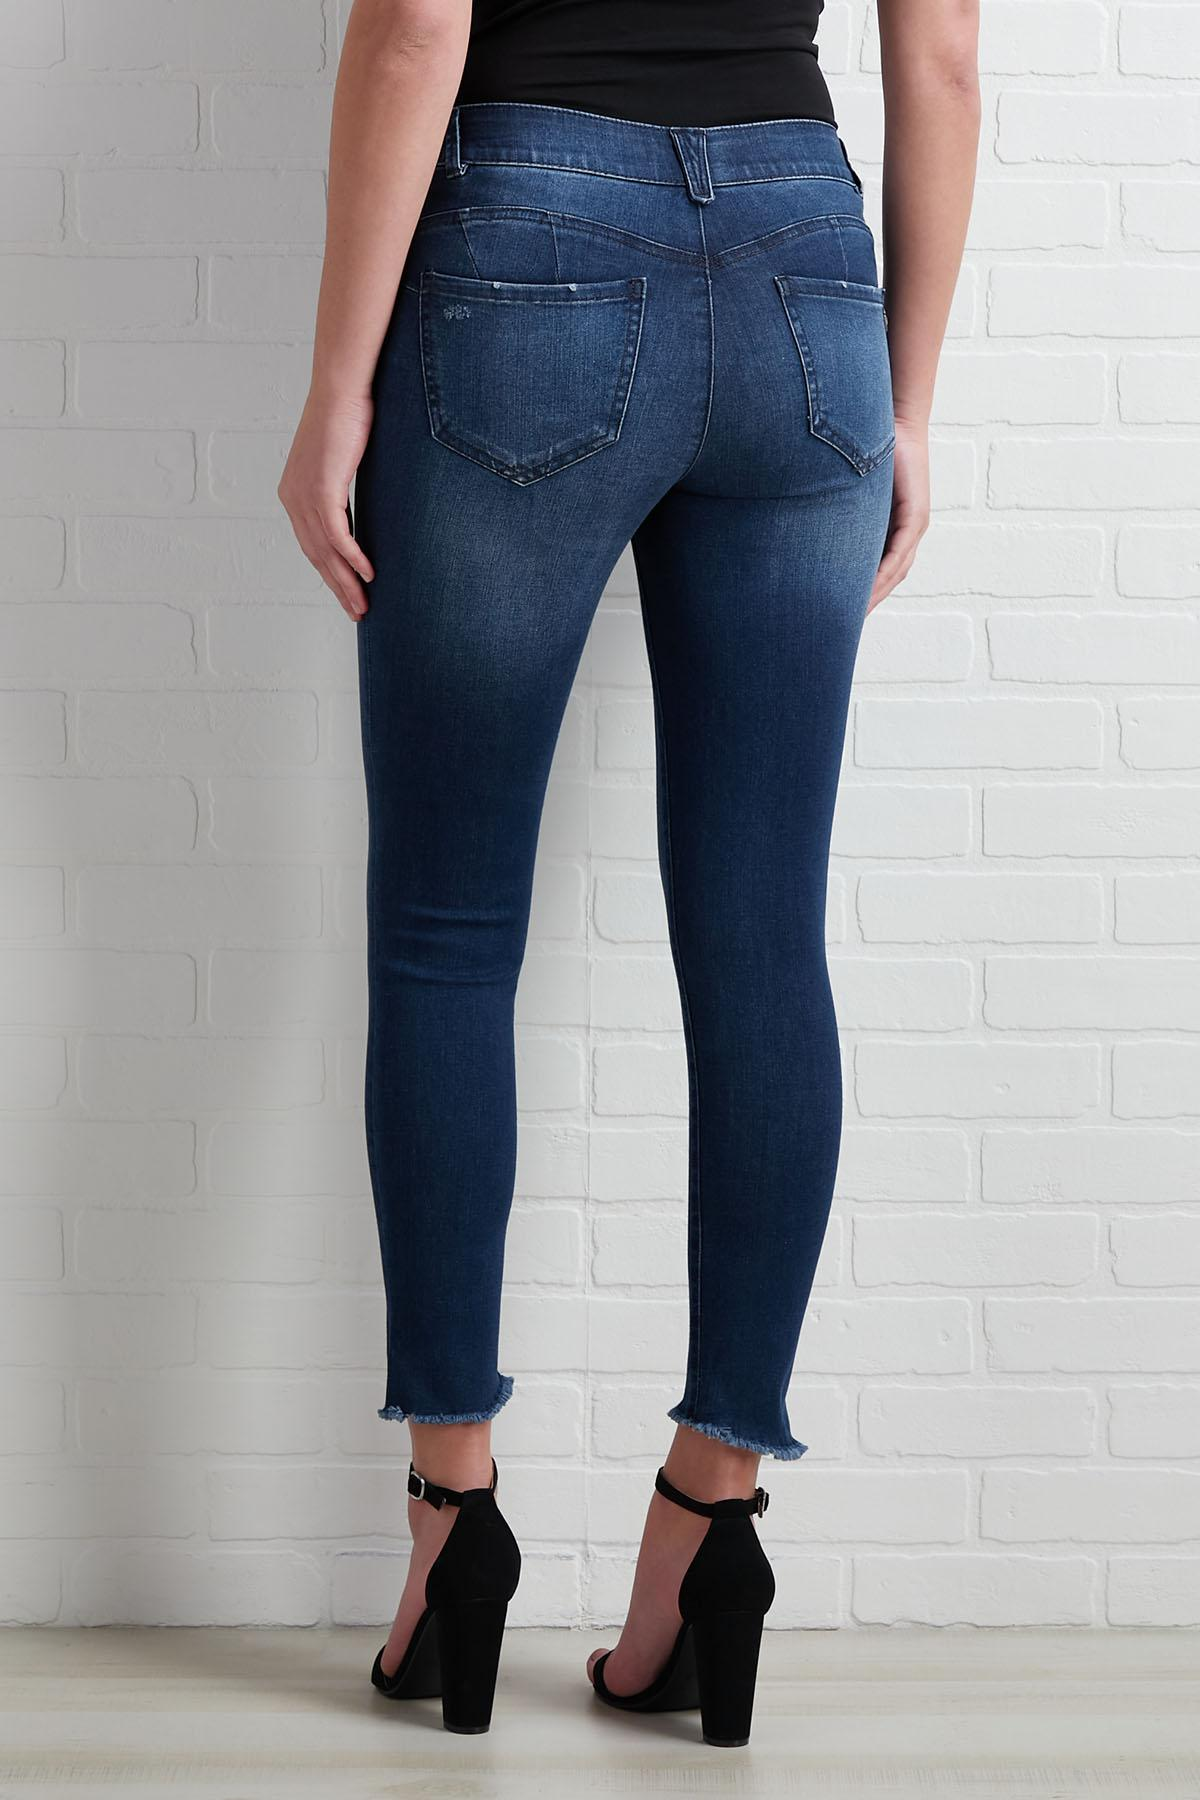 Step It Up Skinny Jeans